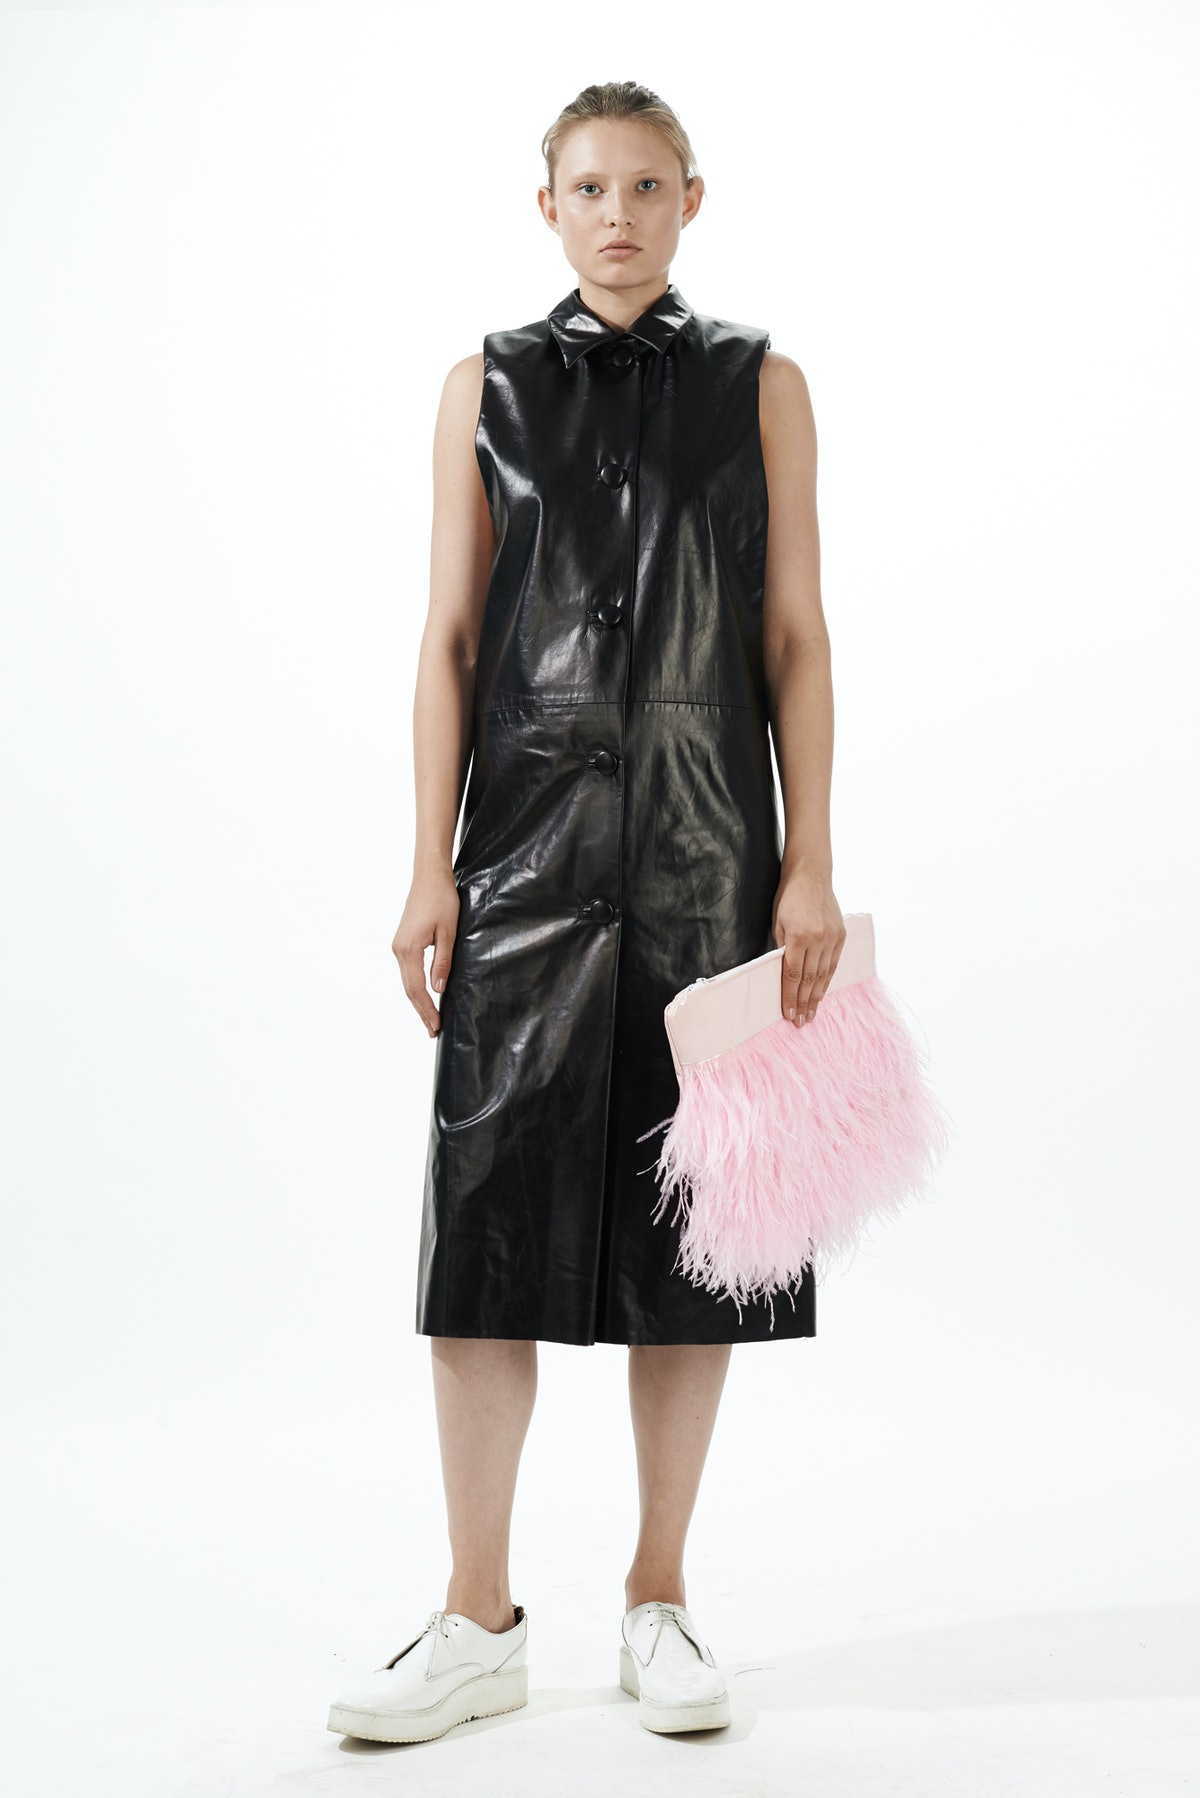 A look from Omelya's Pre-Fall 2015 collection